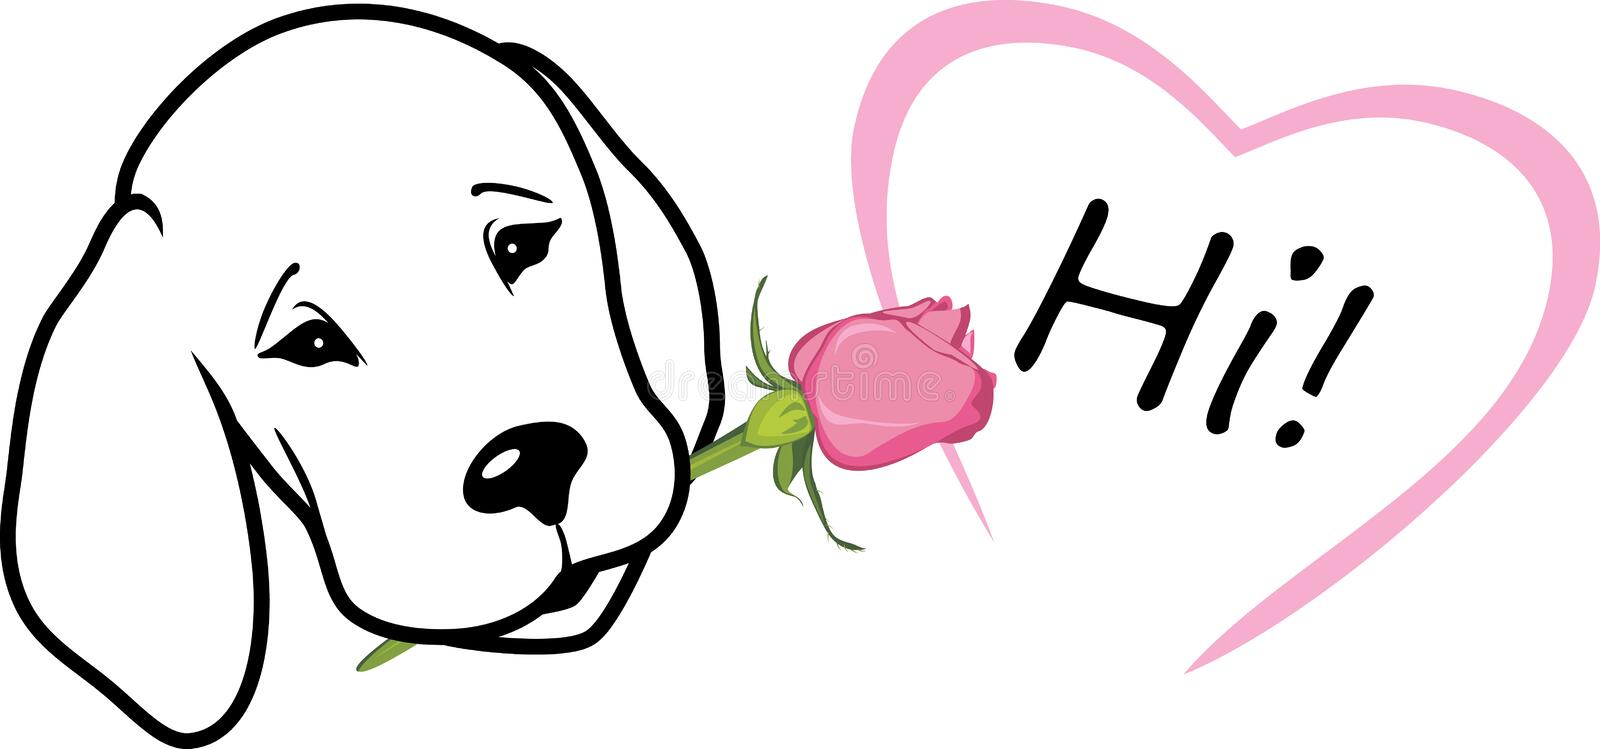 Retriever gives a rose and says hi. T-shirt design royalty free stock image